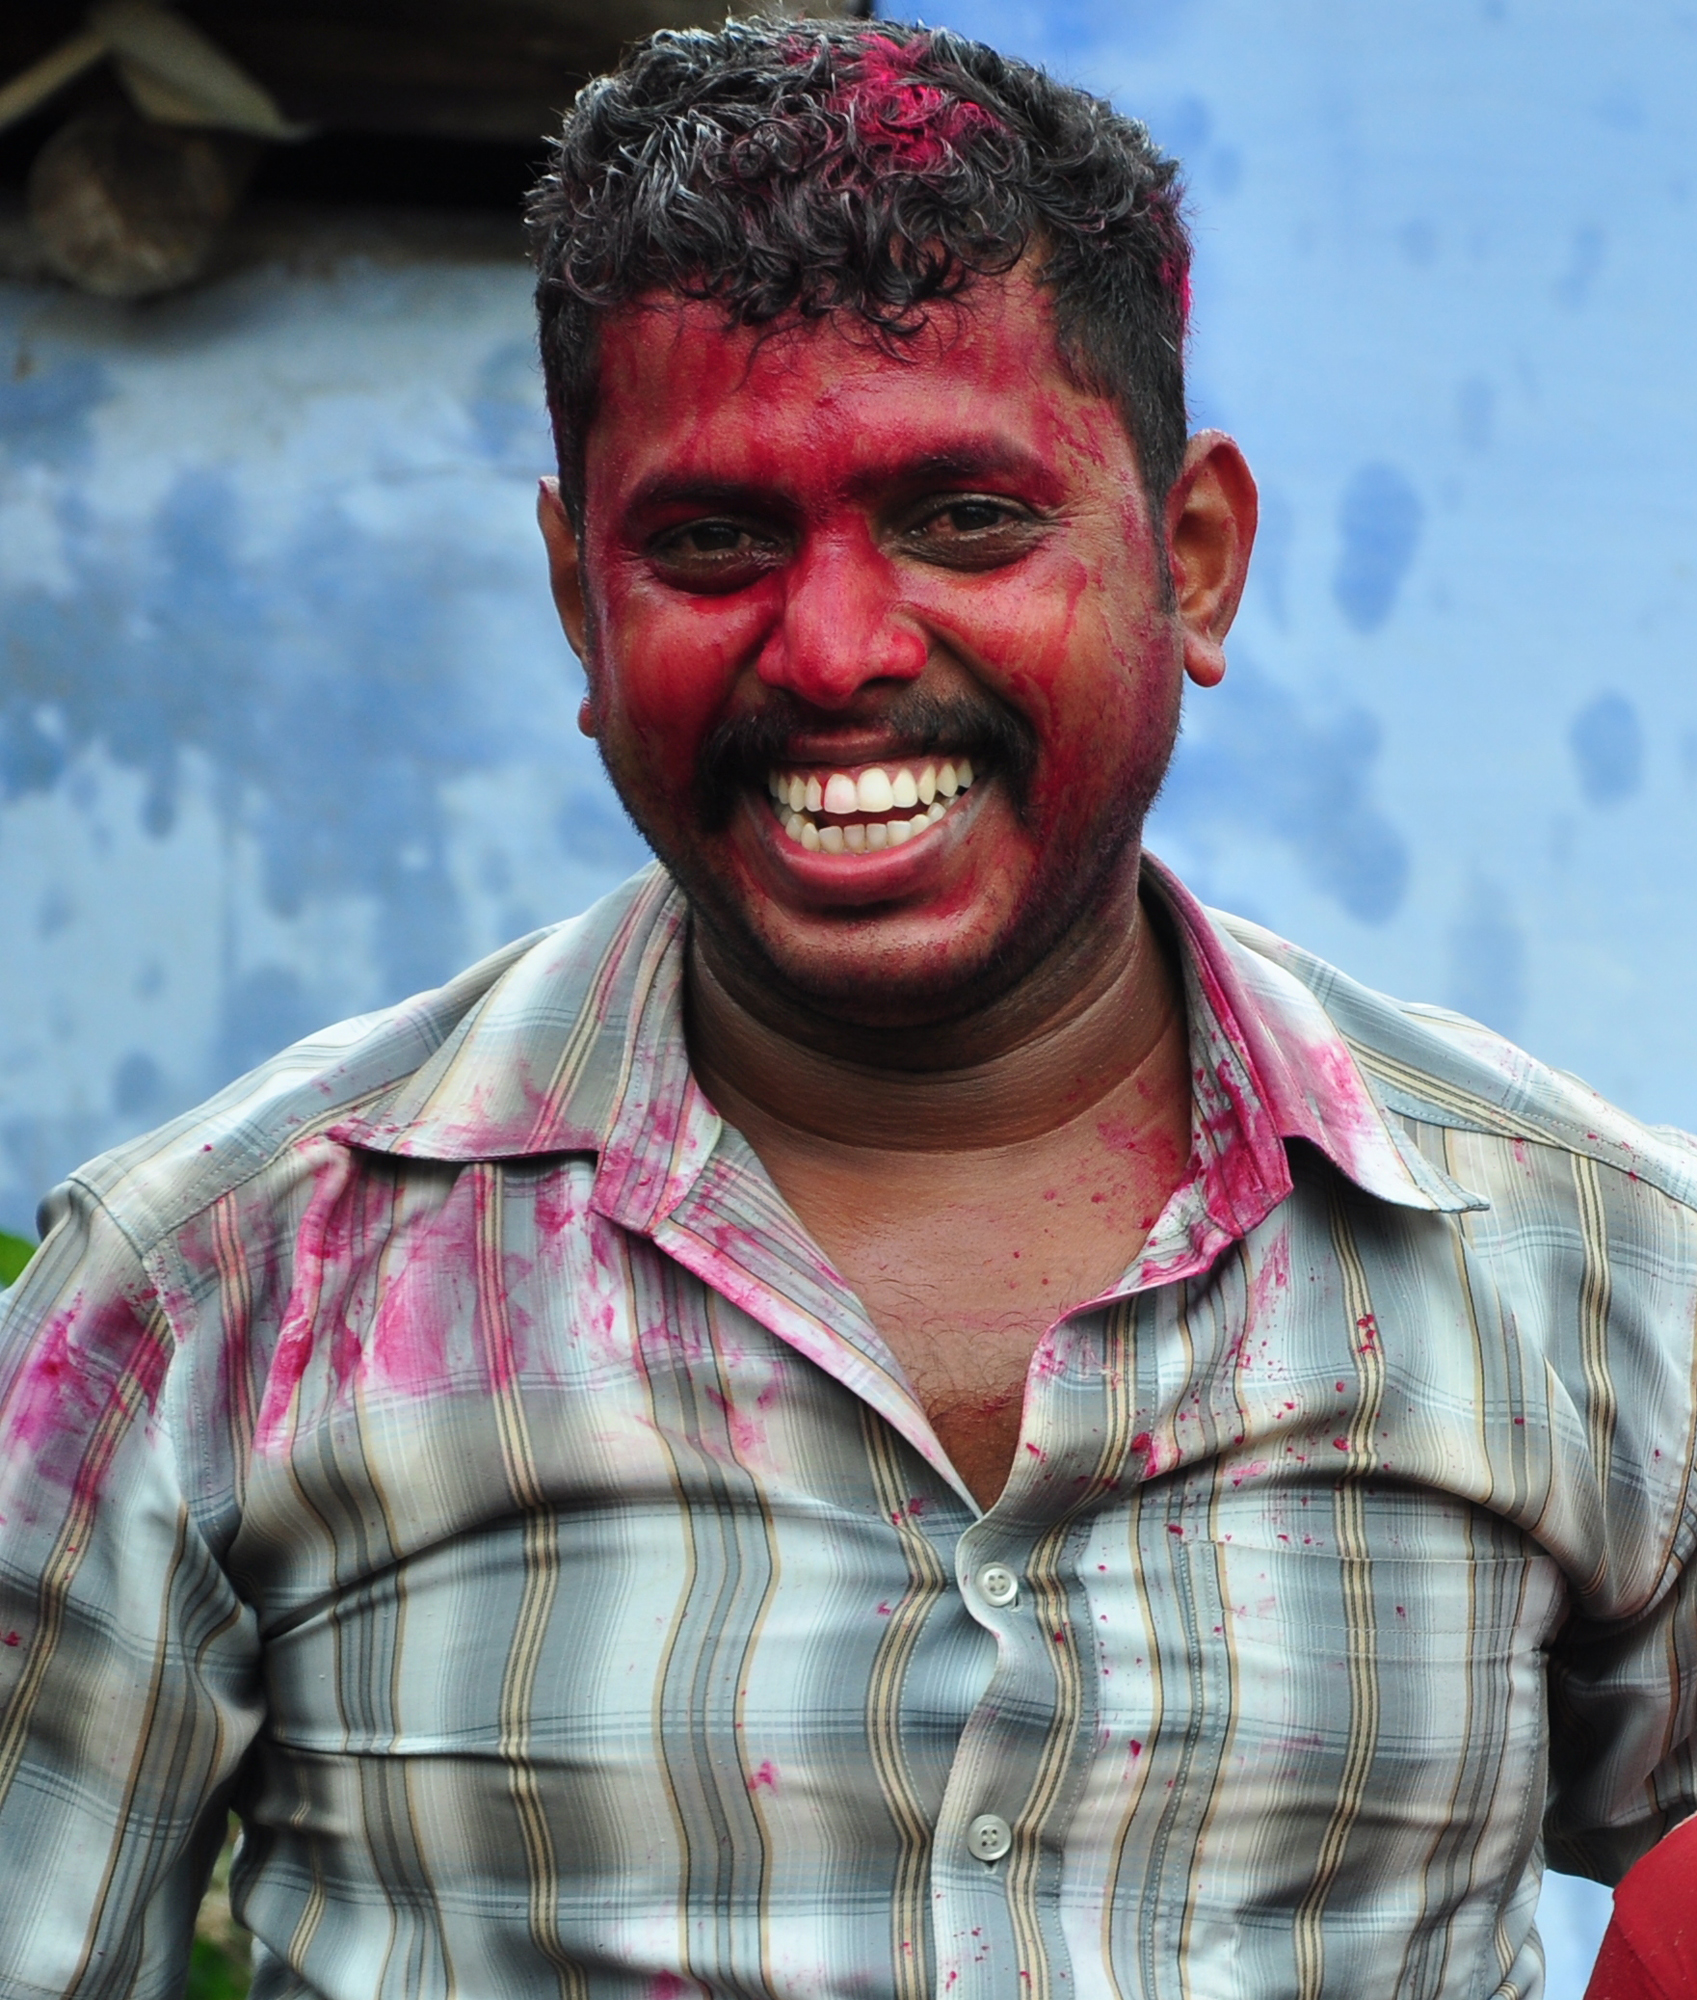 this was taken at the time of holi